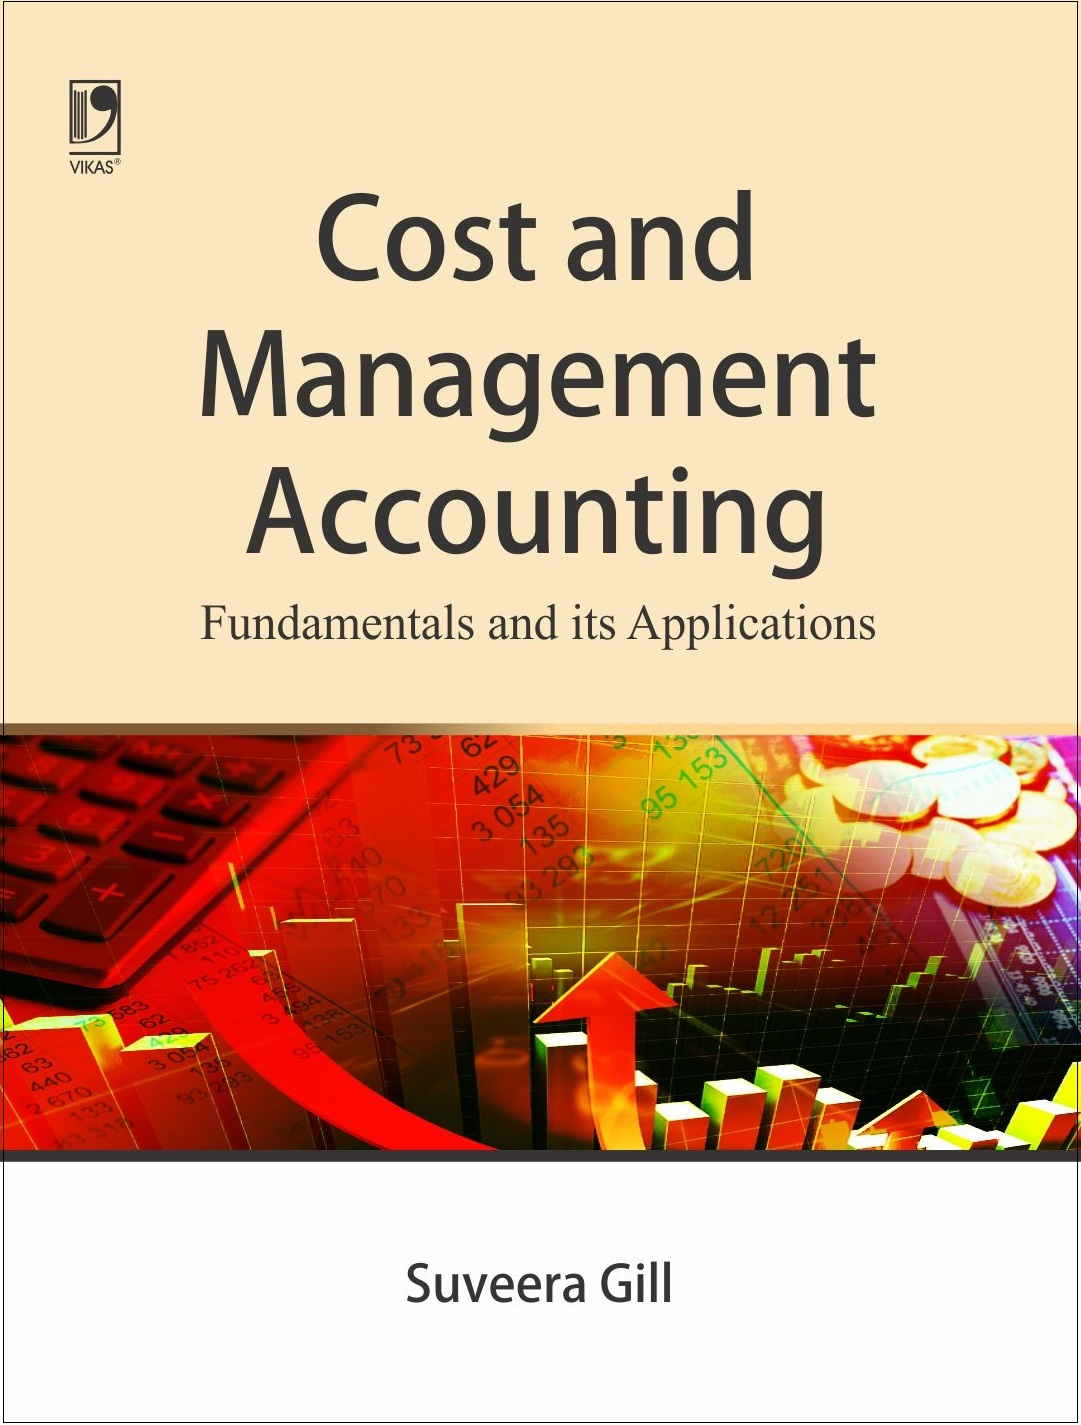 COST AND MANAGEMENT ACCOUNTING: FUNDAMENTALS AND ITS APPLICATIONS by  SUVEERA GILL